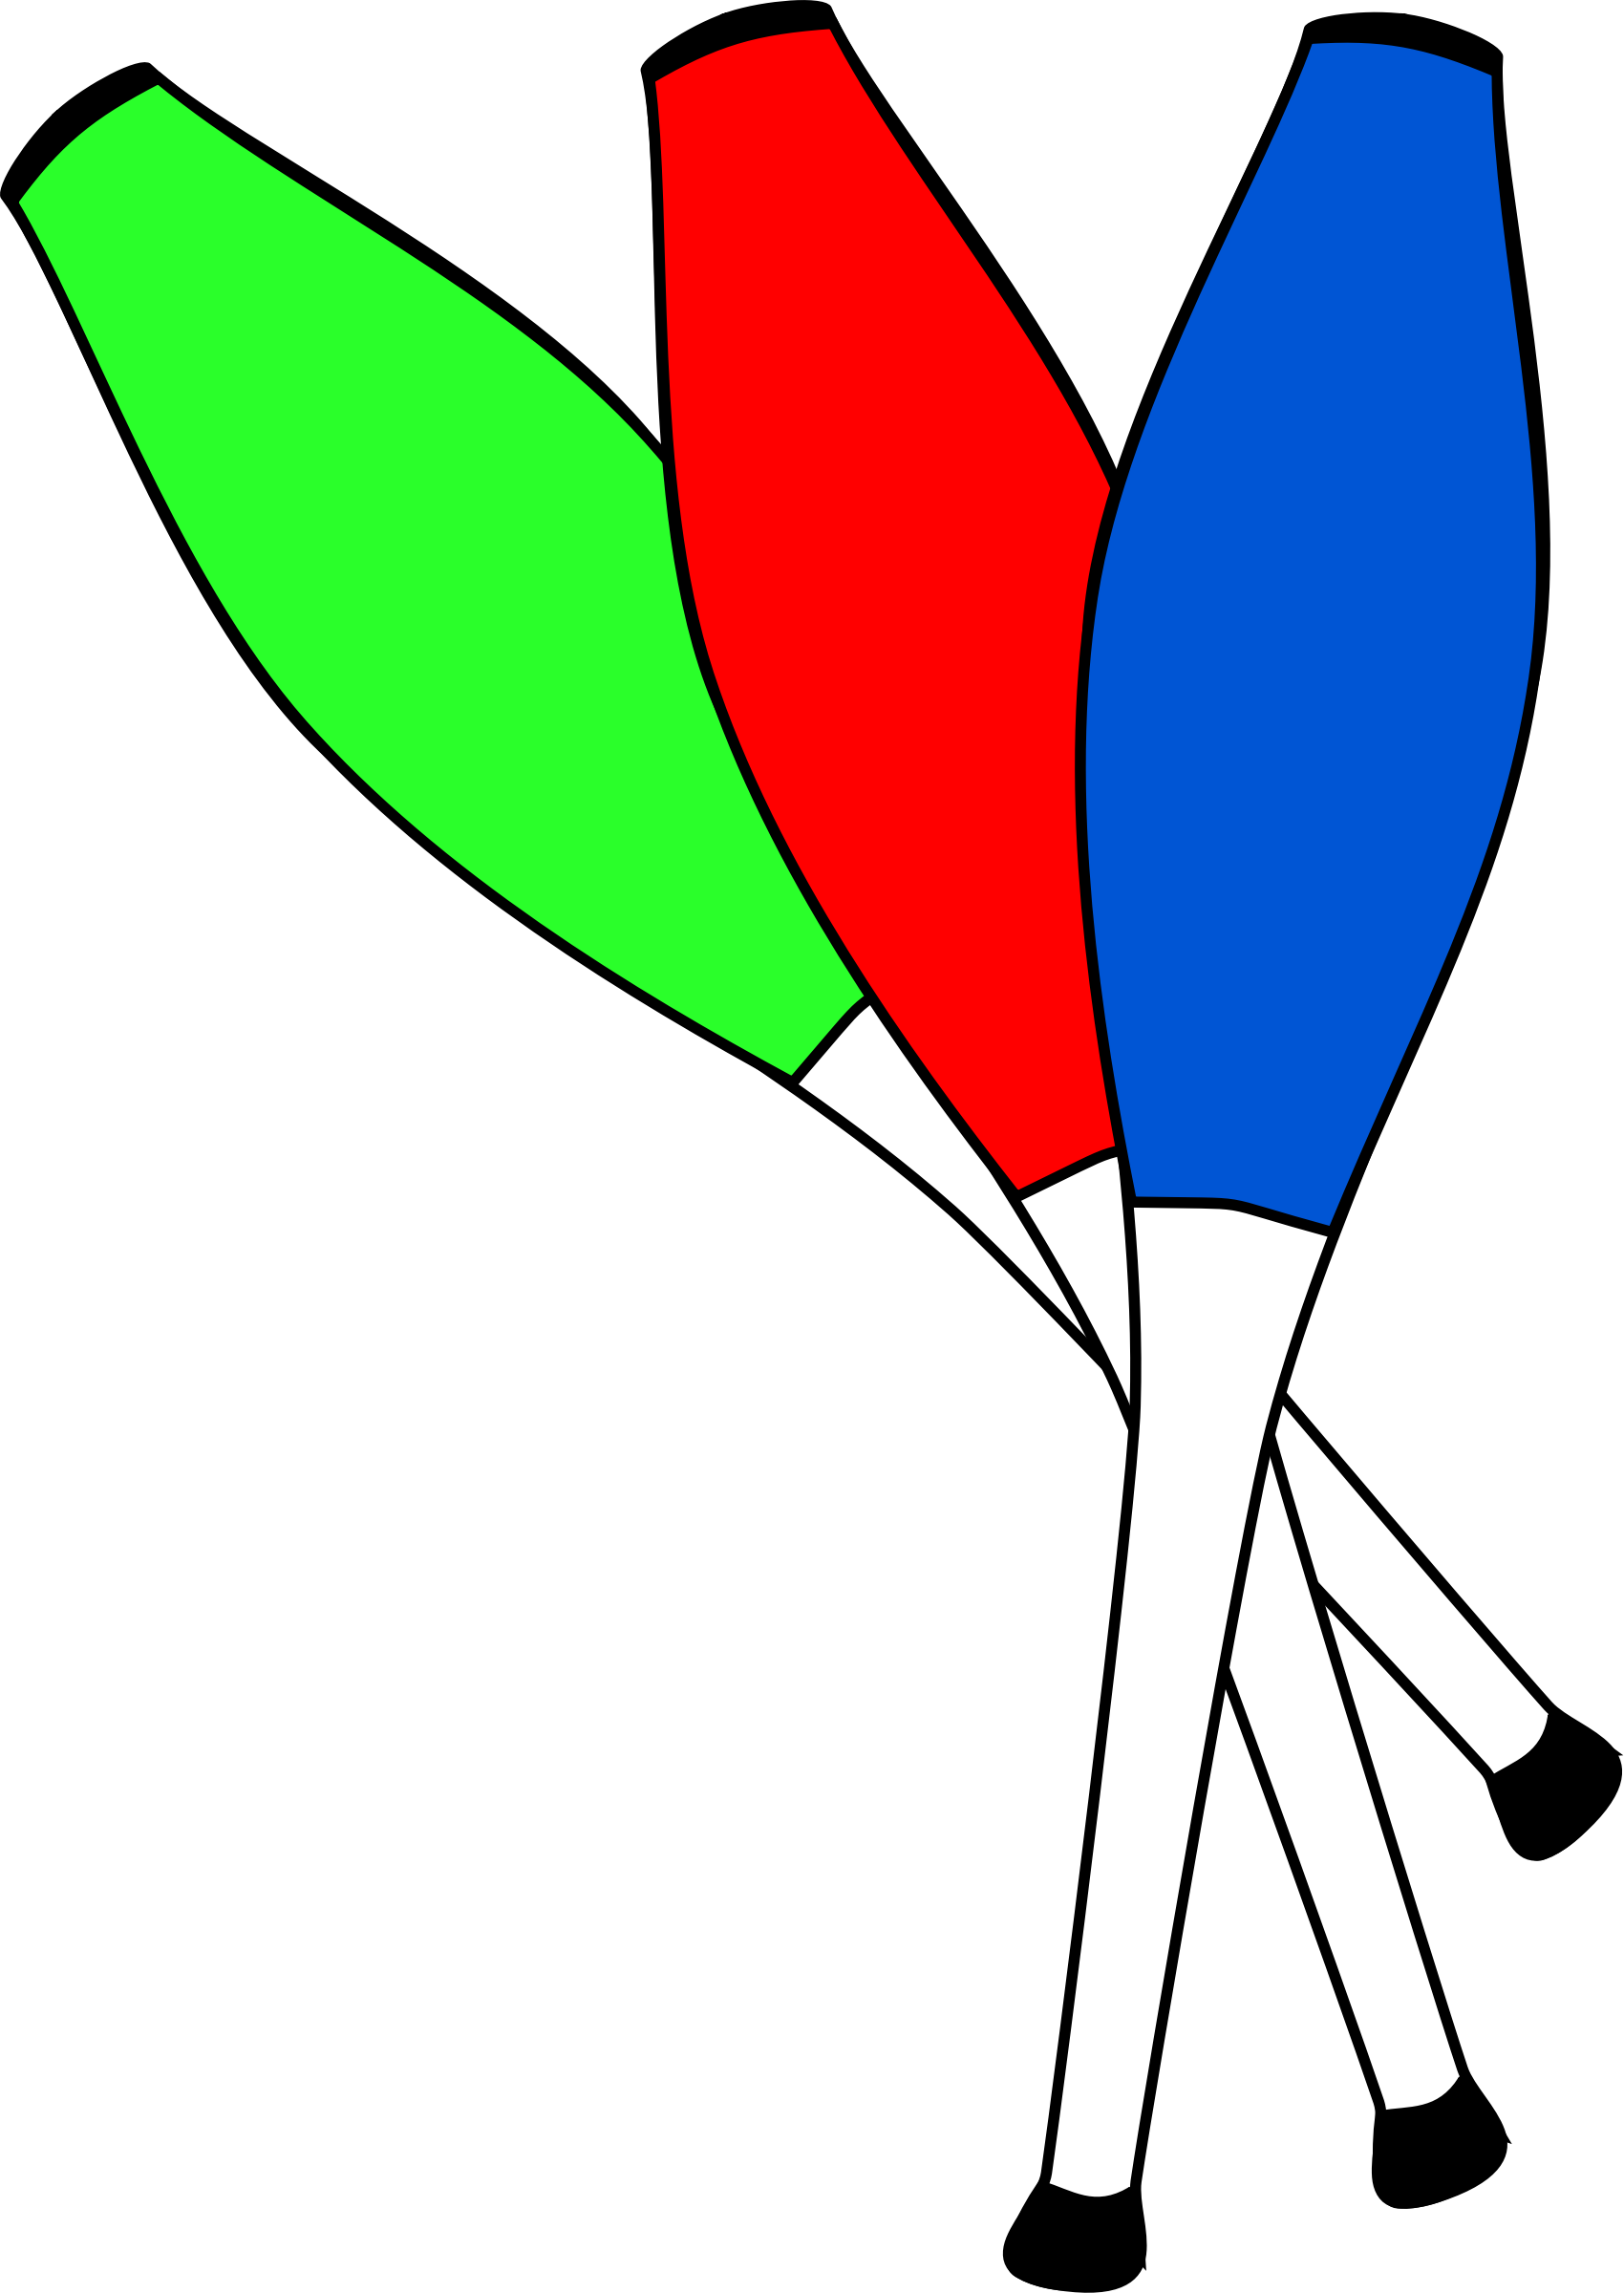 Working clipart juggler. Clubs juggling icons png